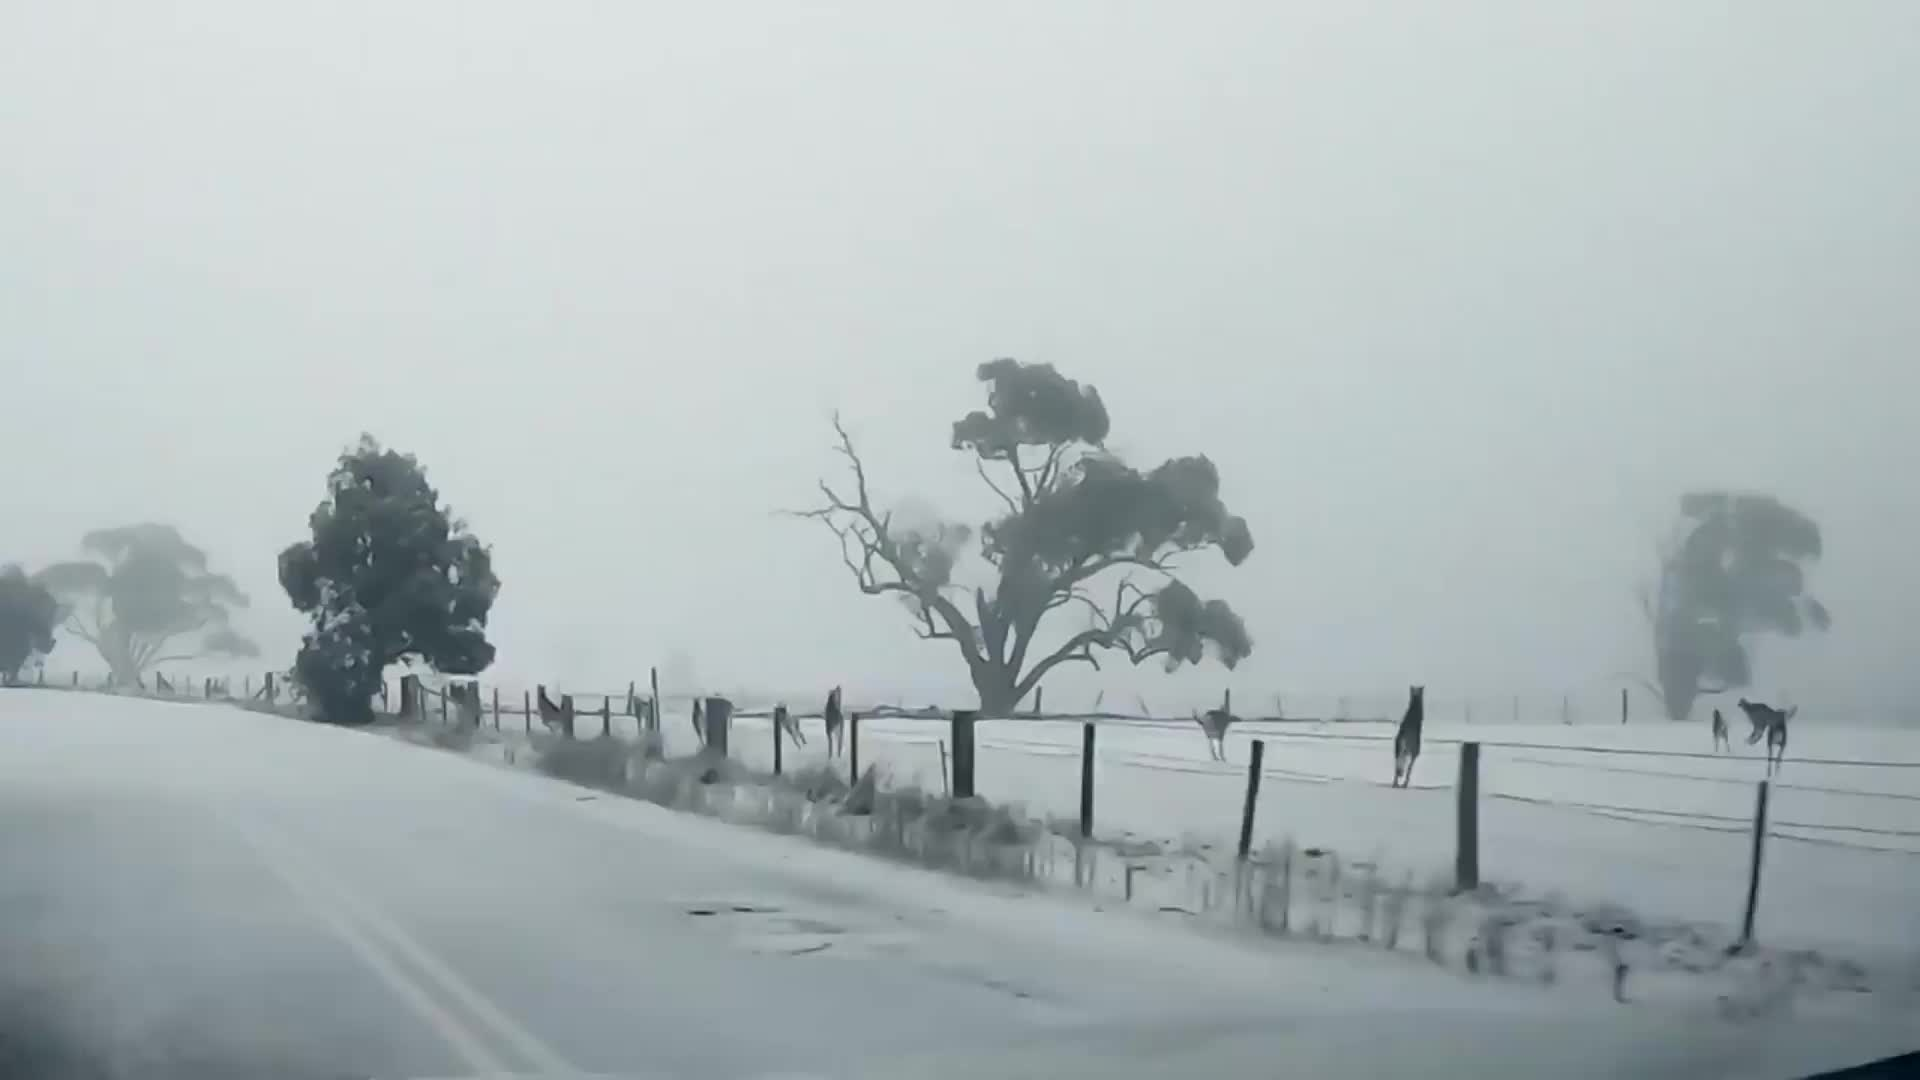 Kangaroos in the Snow, ❄️ Nippy the bush kangaroo! ❄️ These roos jumped all around in the snow at C... GIFs